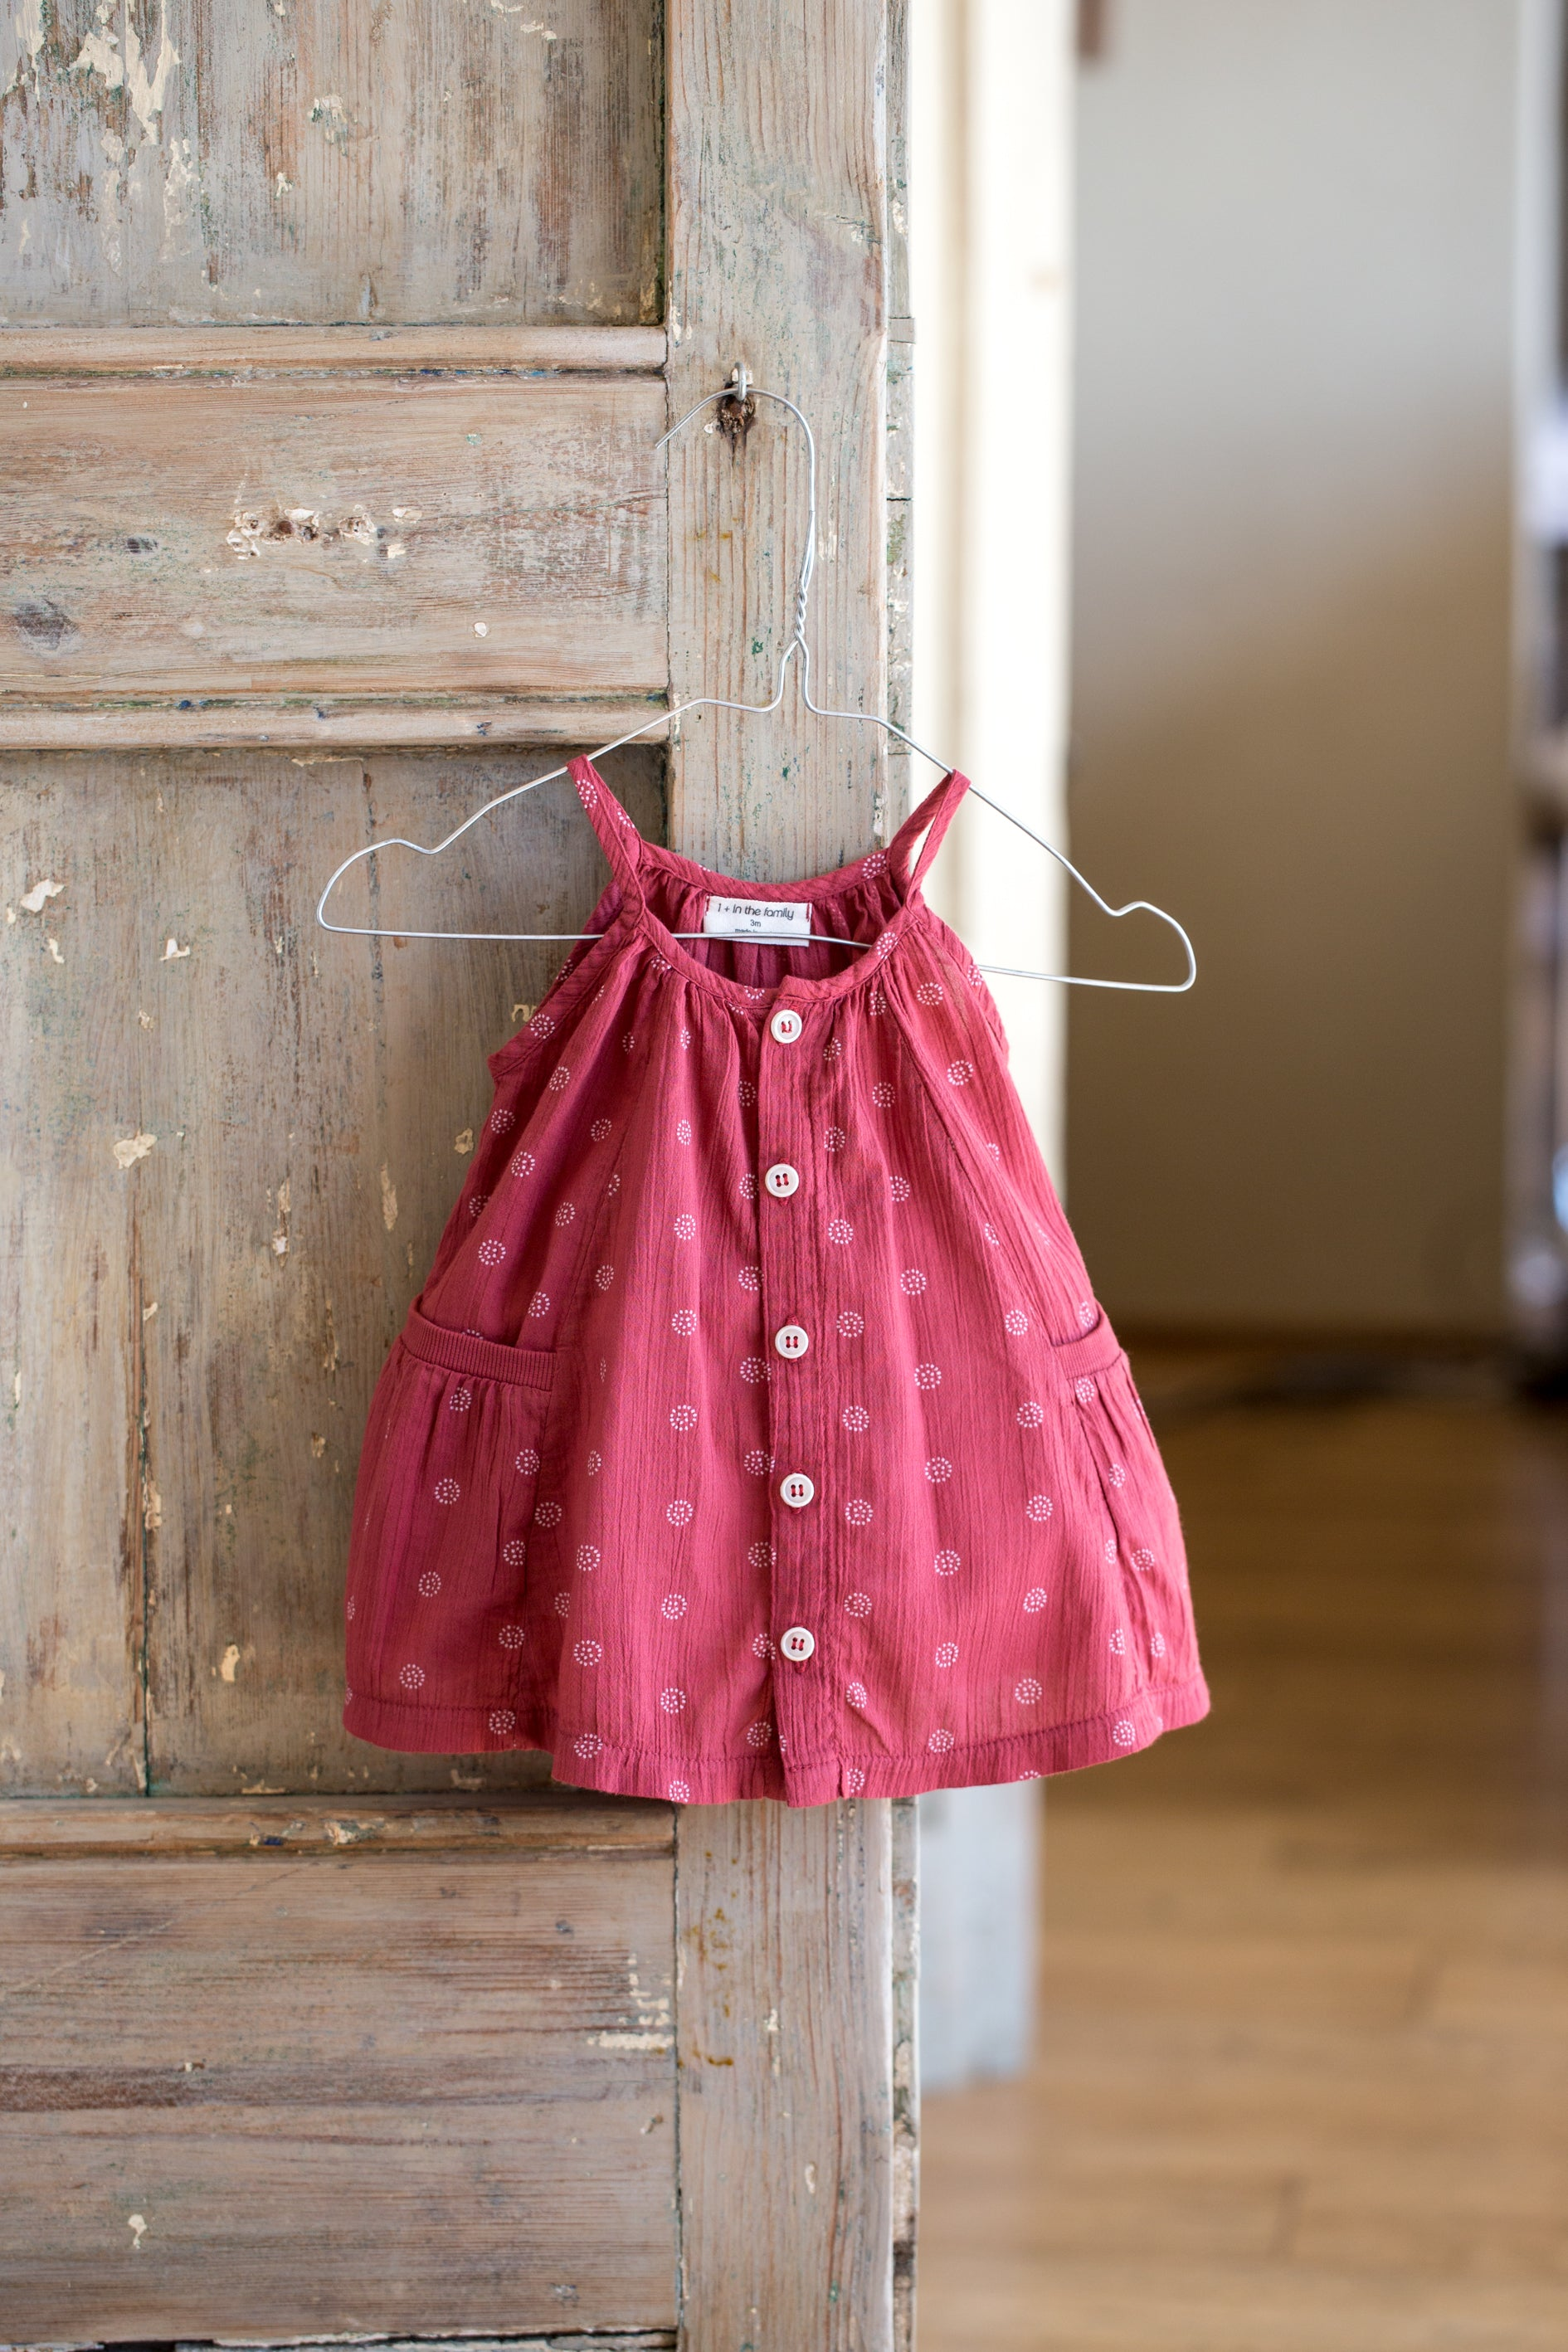 Trendy baby fashion by 1+ in the Family at Bonjour Baby Baskets, best Corporate Baby Gifts